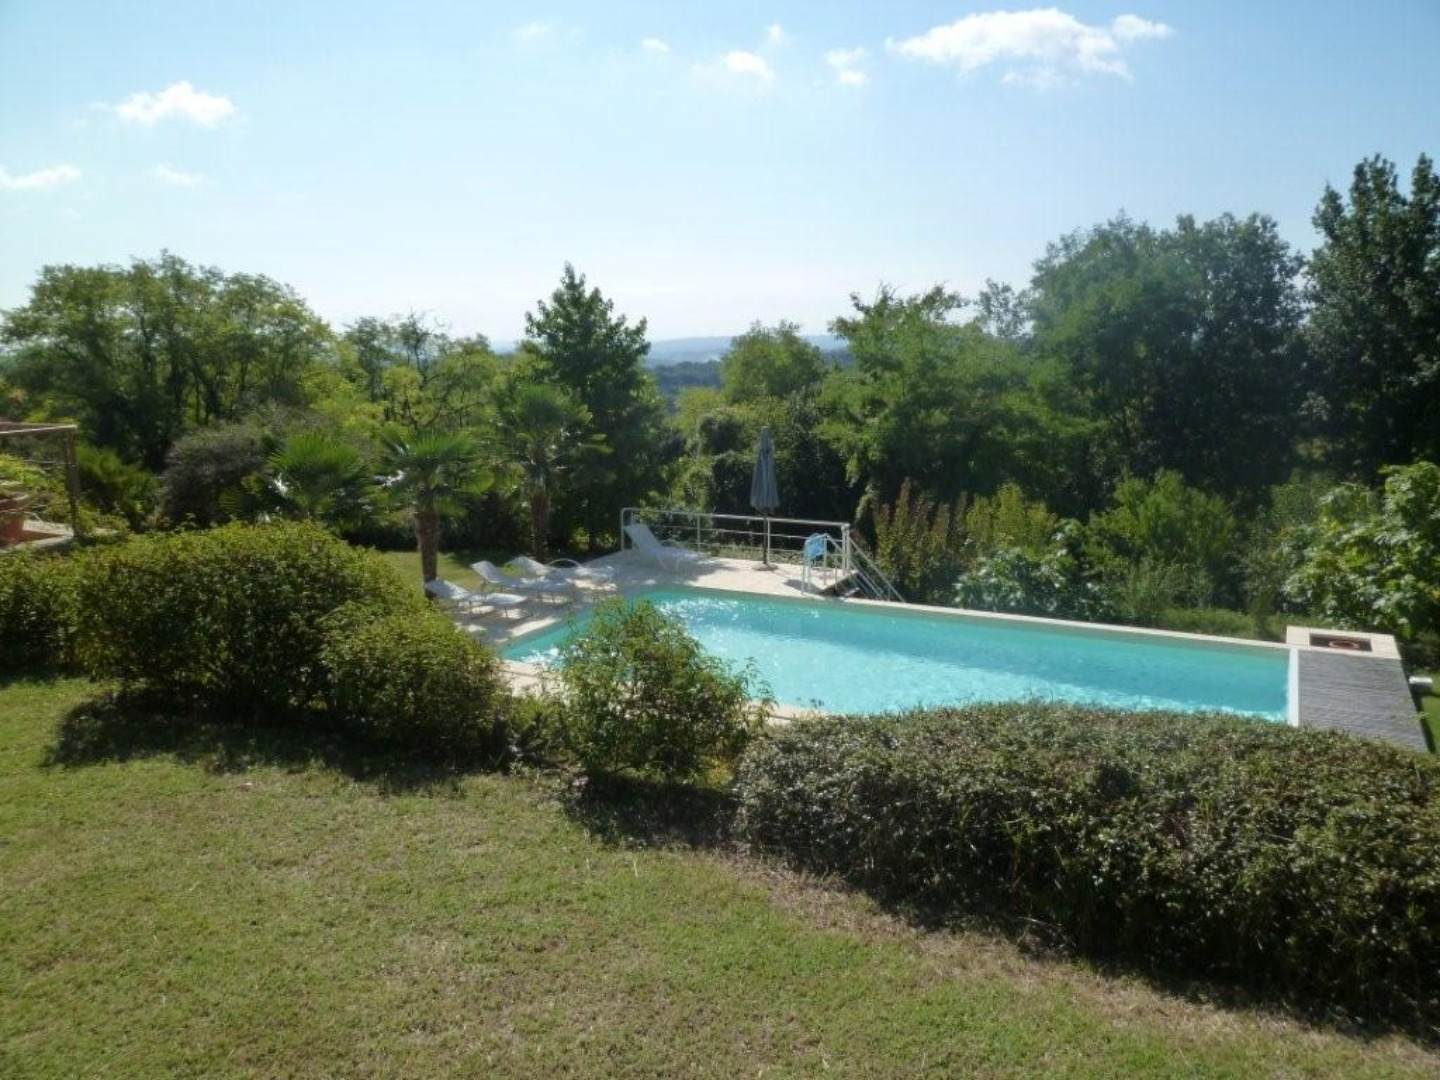 A garden with water in the background at Les Hauts de La Faurie.